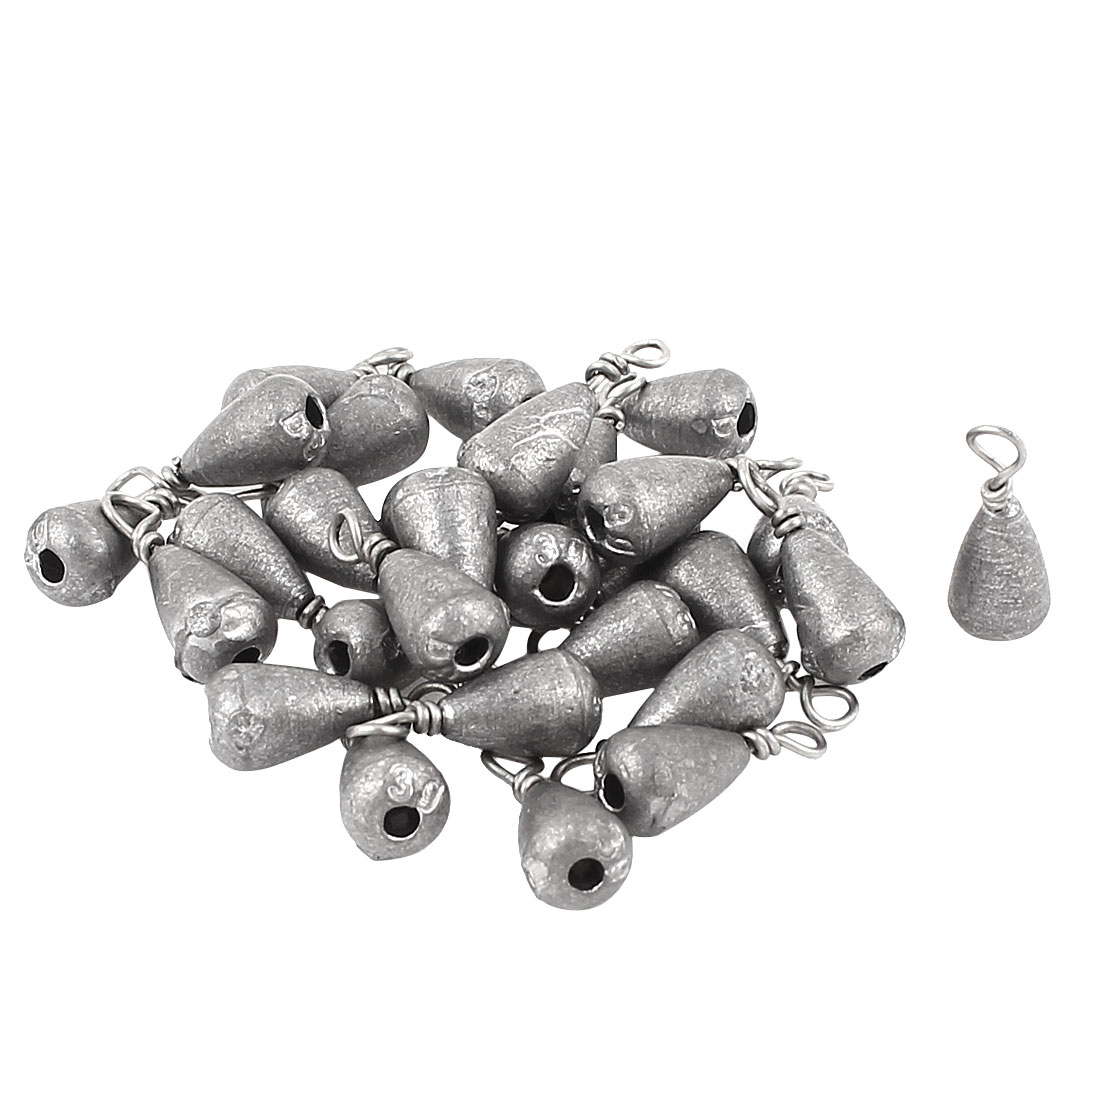 Fish Tackle Bass Casting Swivel Sinker 3g Per Piece Fishing Lead Weight 30Pcs